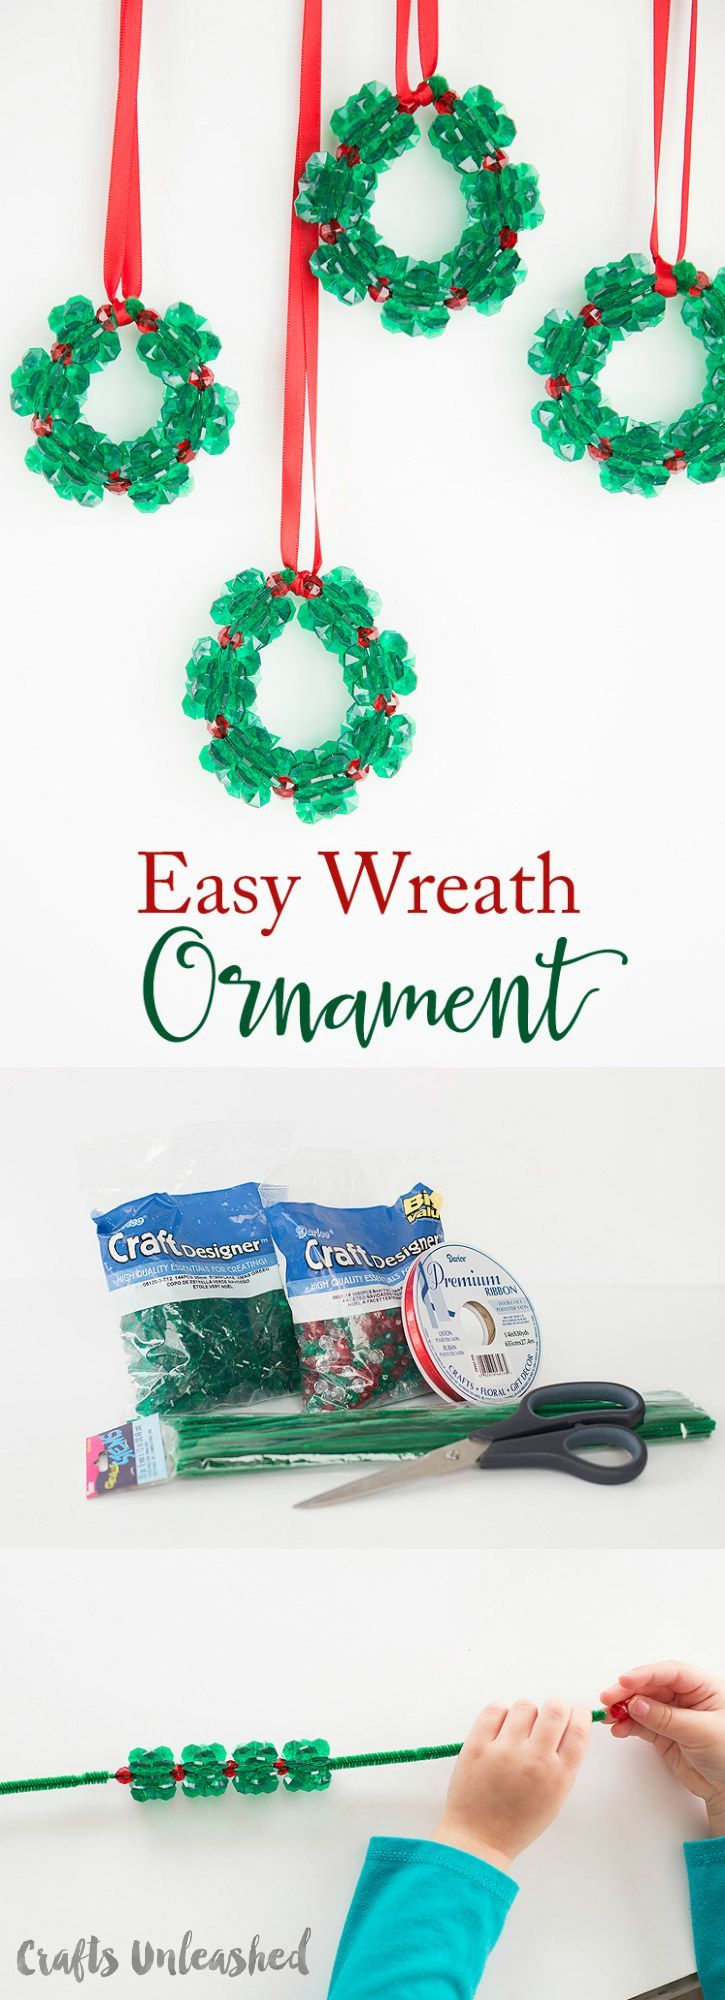 DIY Wreath Ornament Christmas Crafts for Kids                                                                                                                                                                                 More